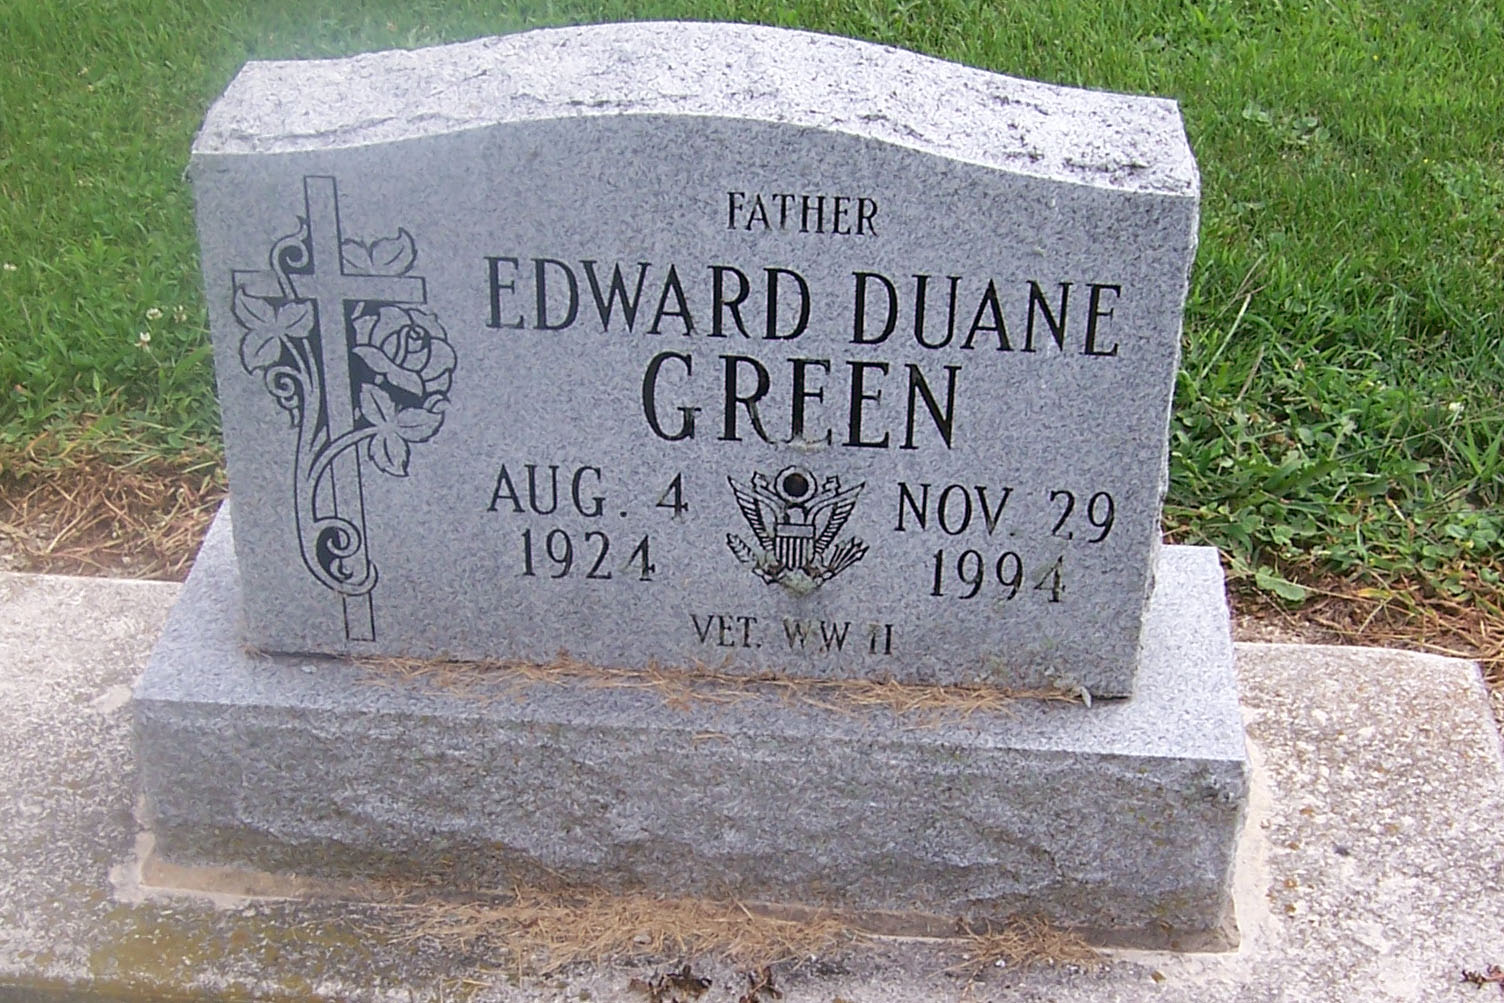 Edward Duane Green